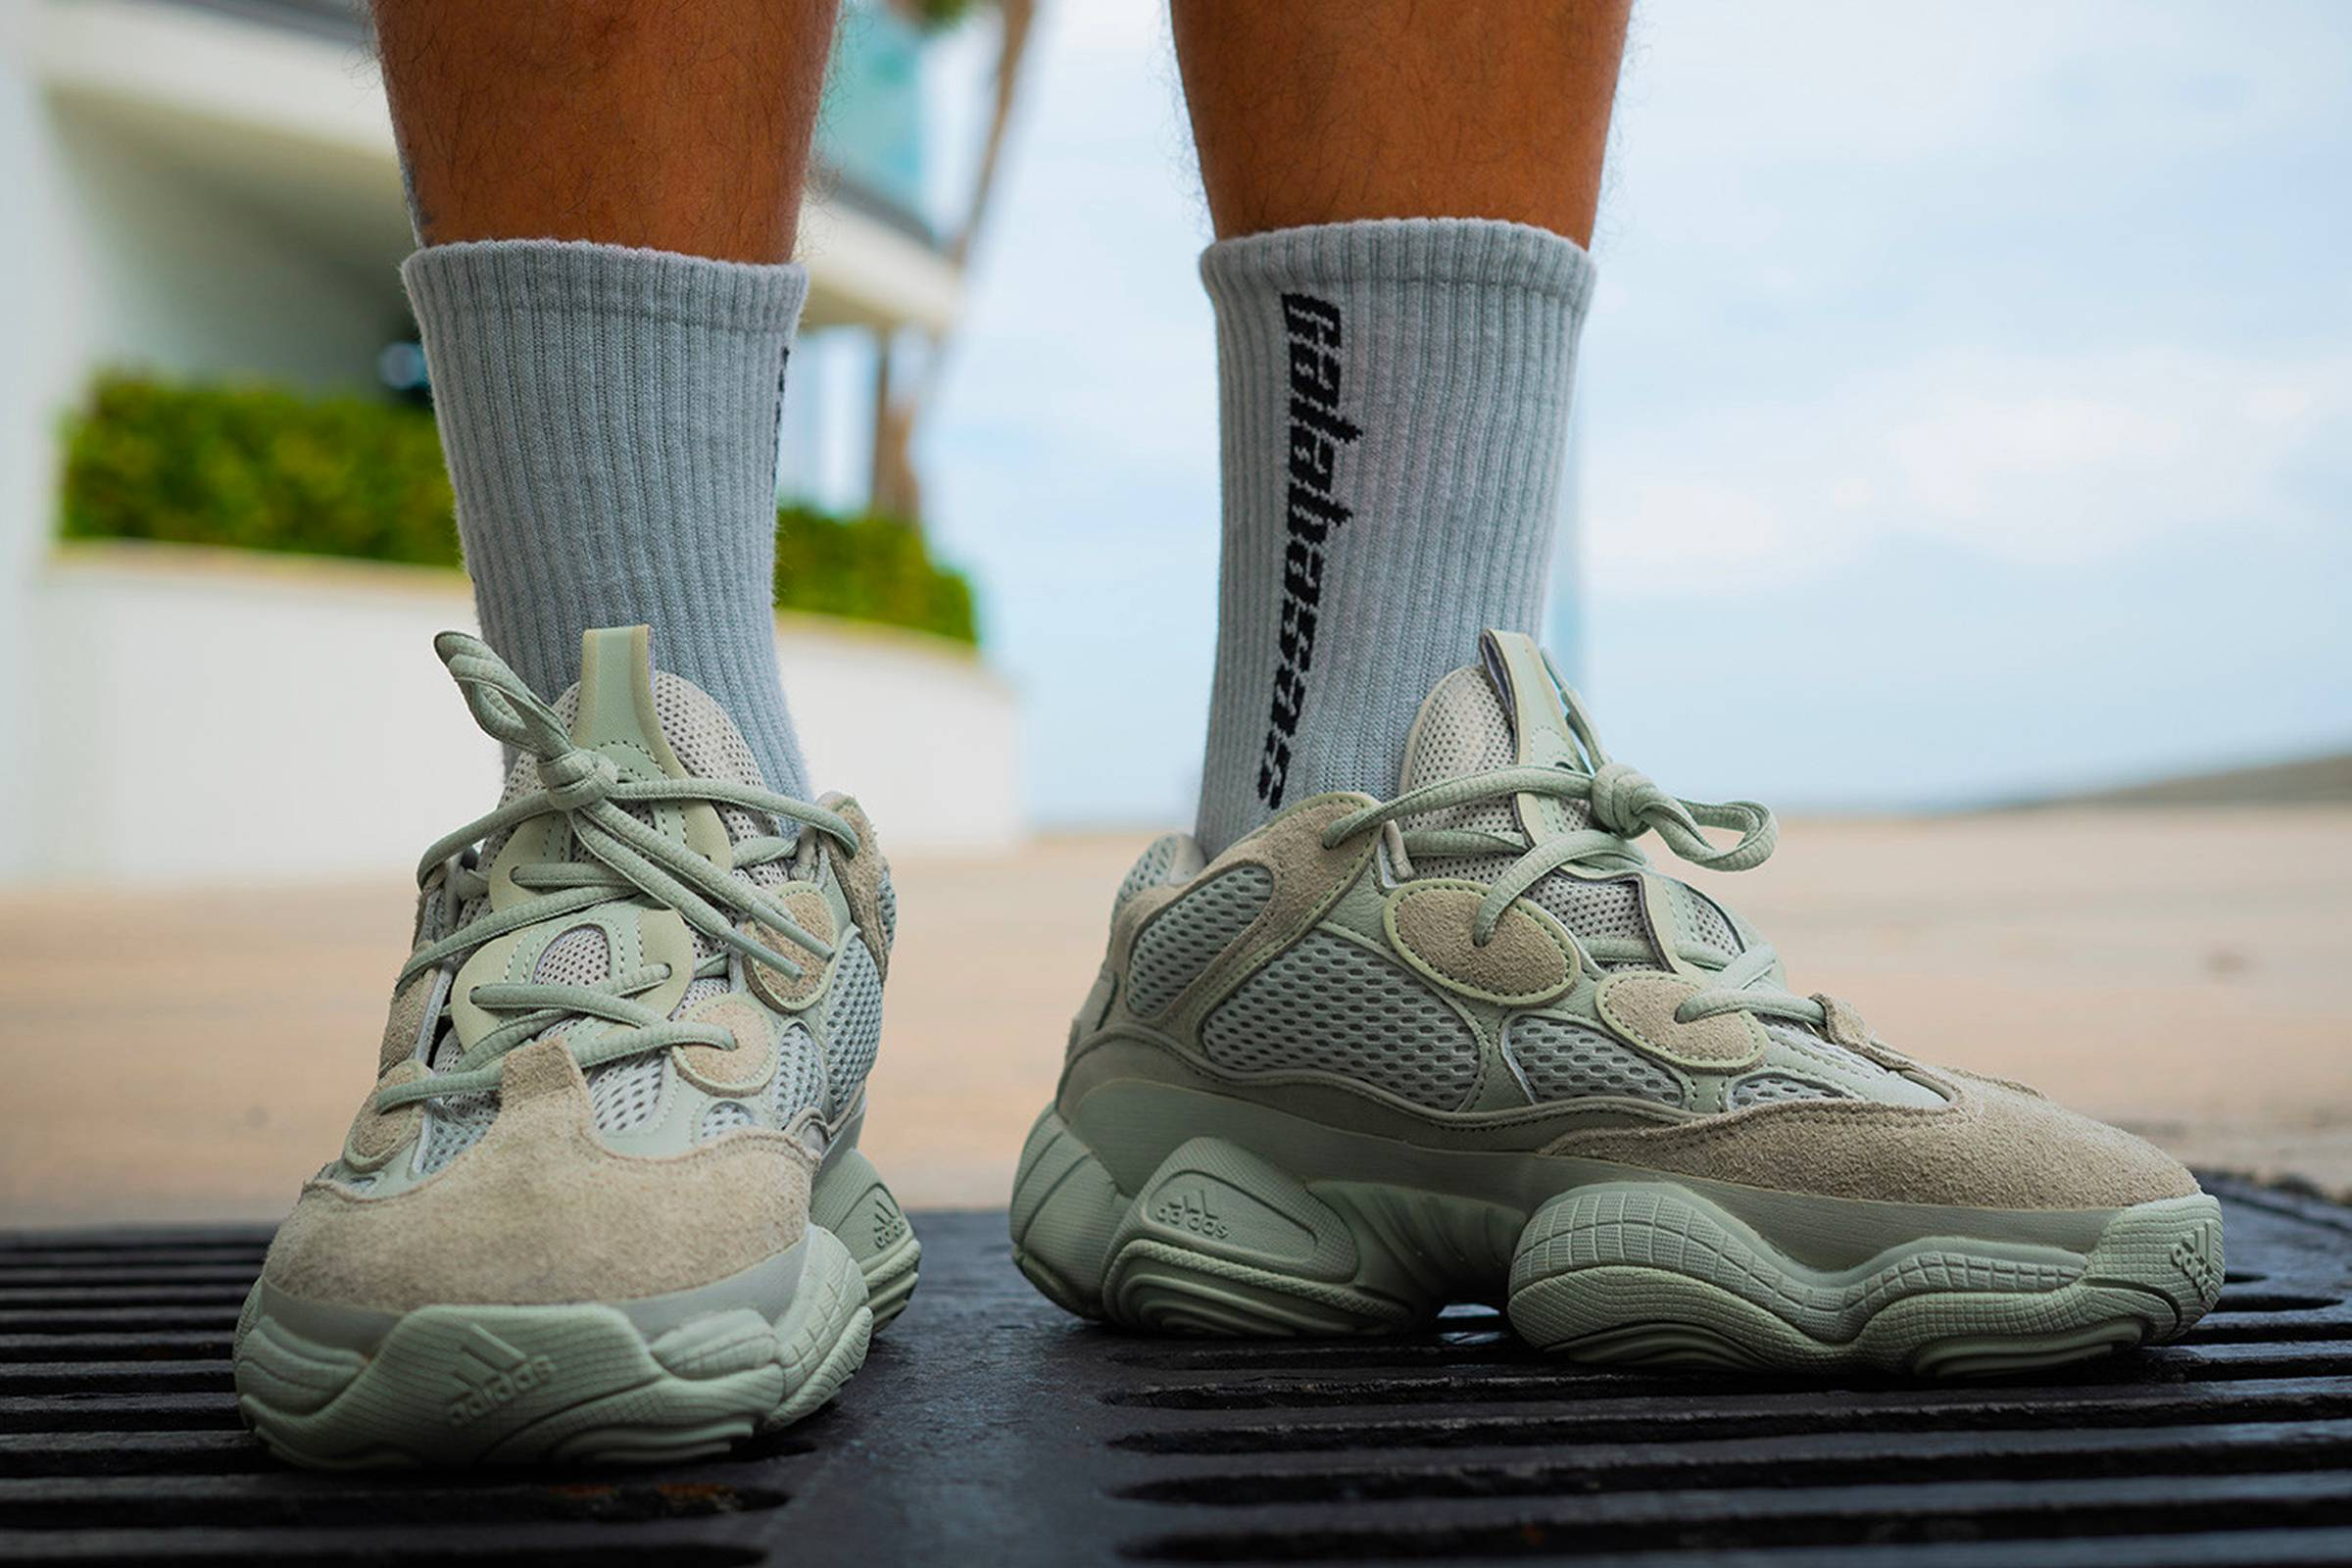 reputable site 0674d 73688 The Yeezy 500 Salt Drops This Friday | Grailed